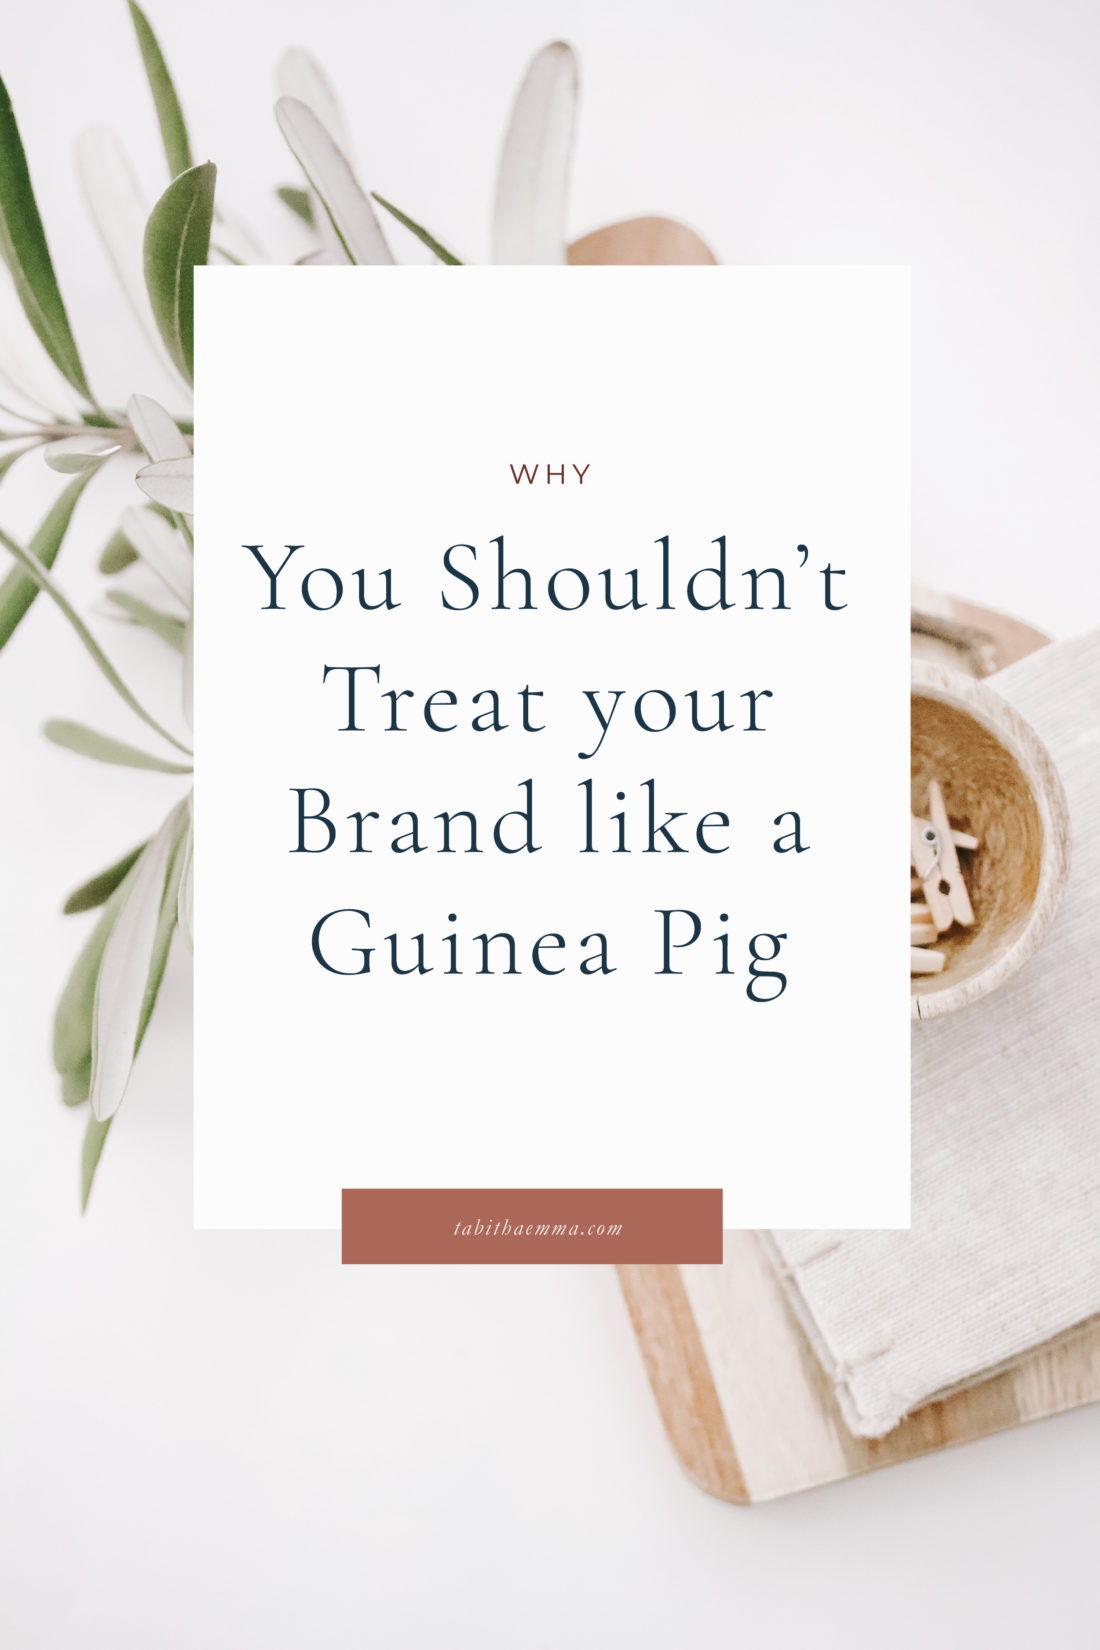 don't treat your brand like a guinea pig